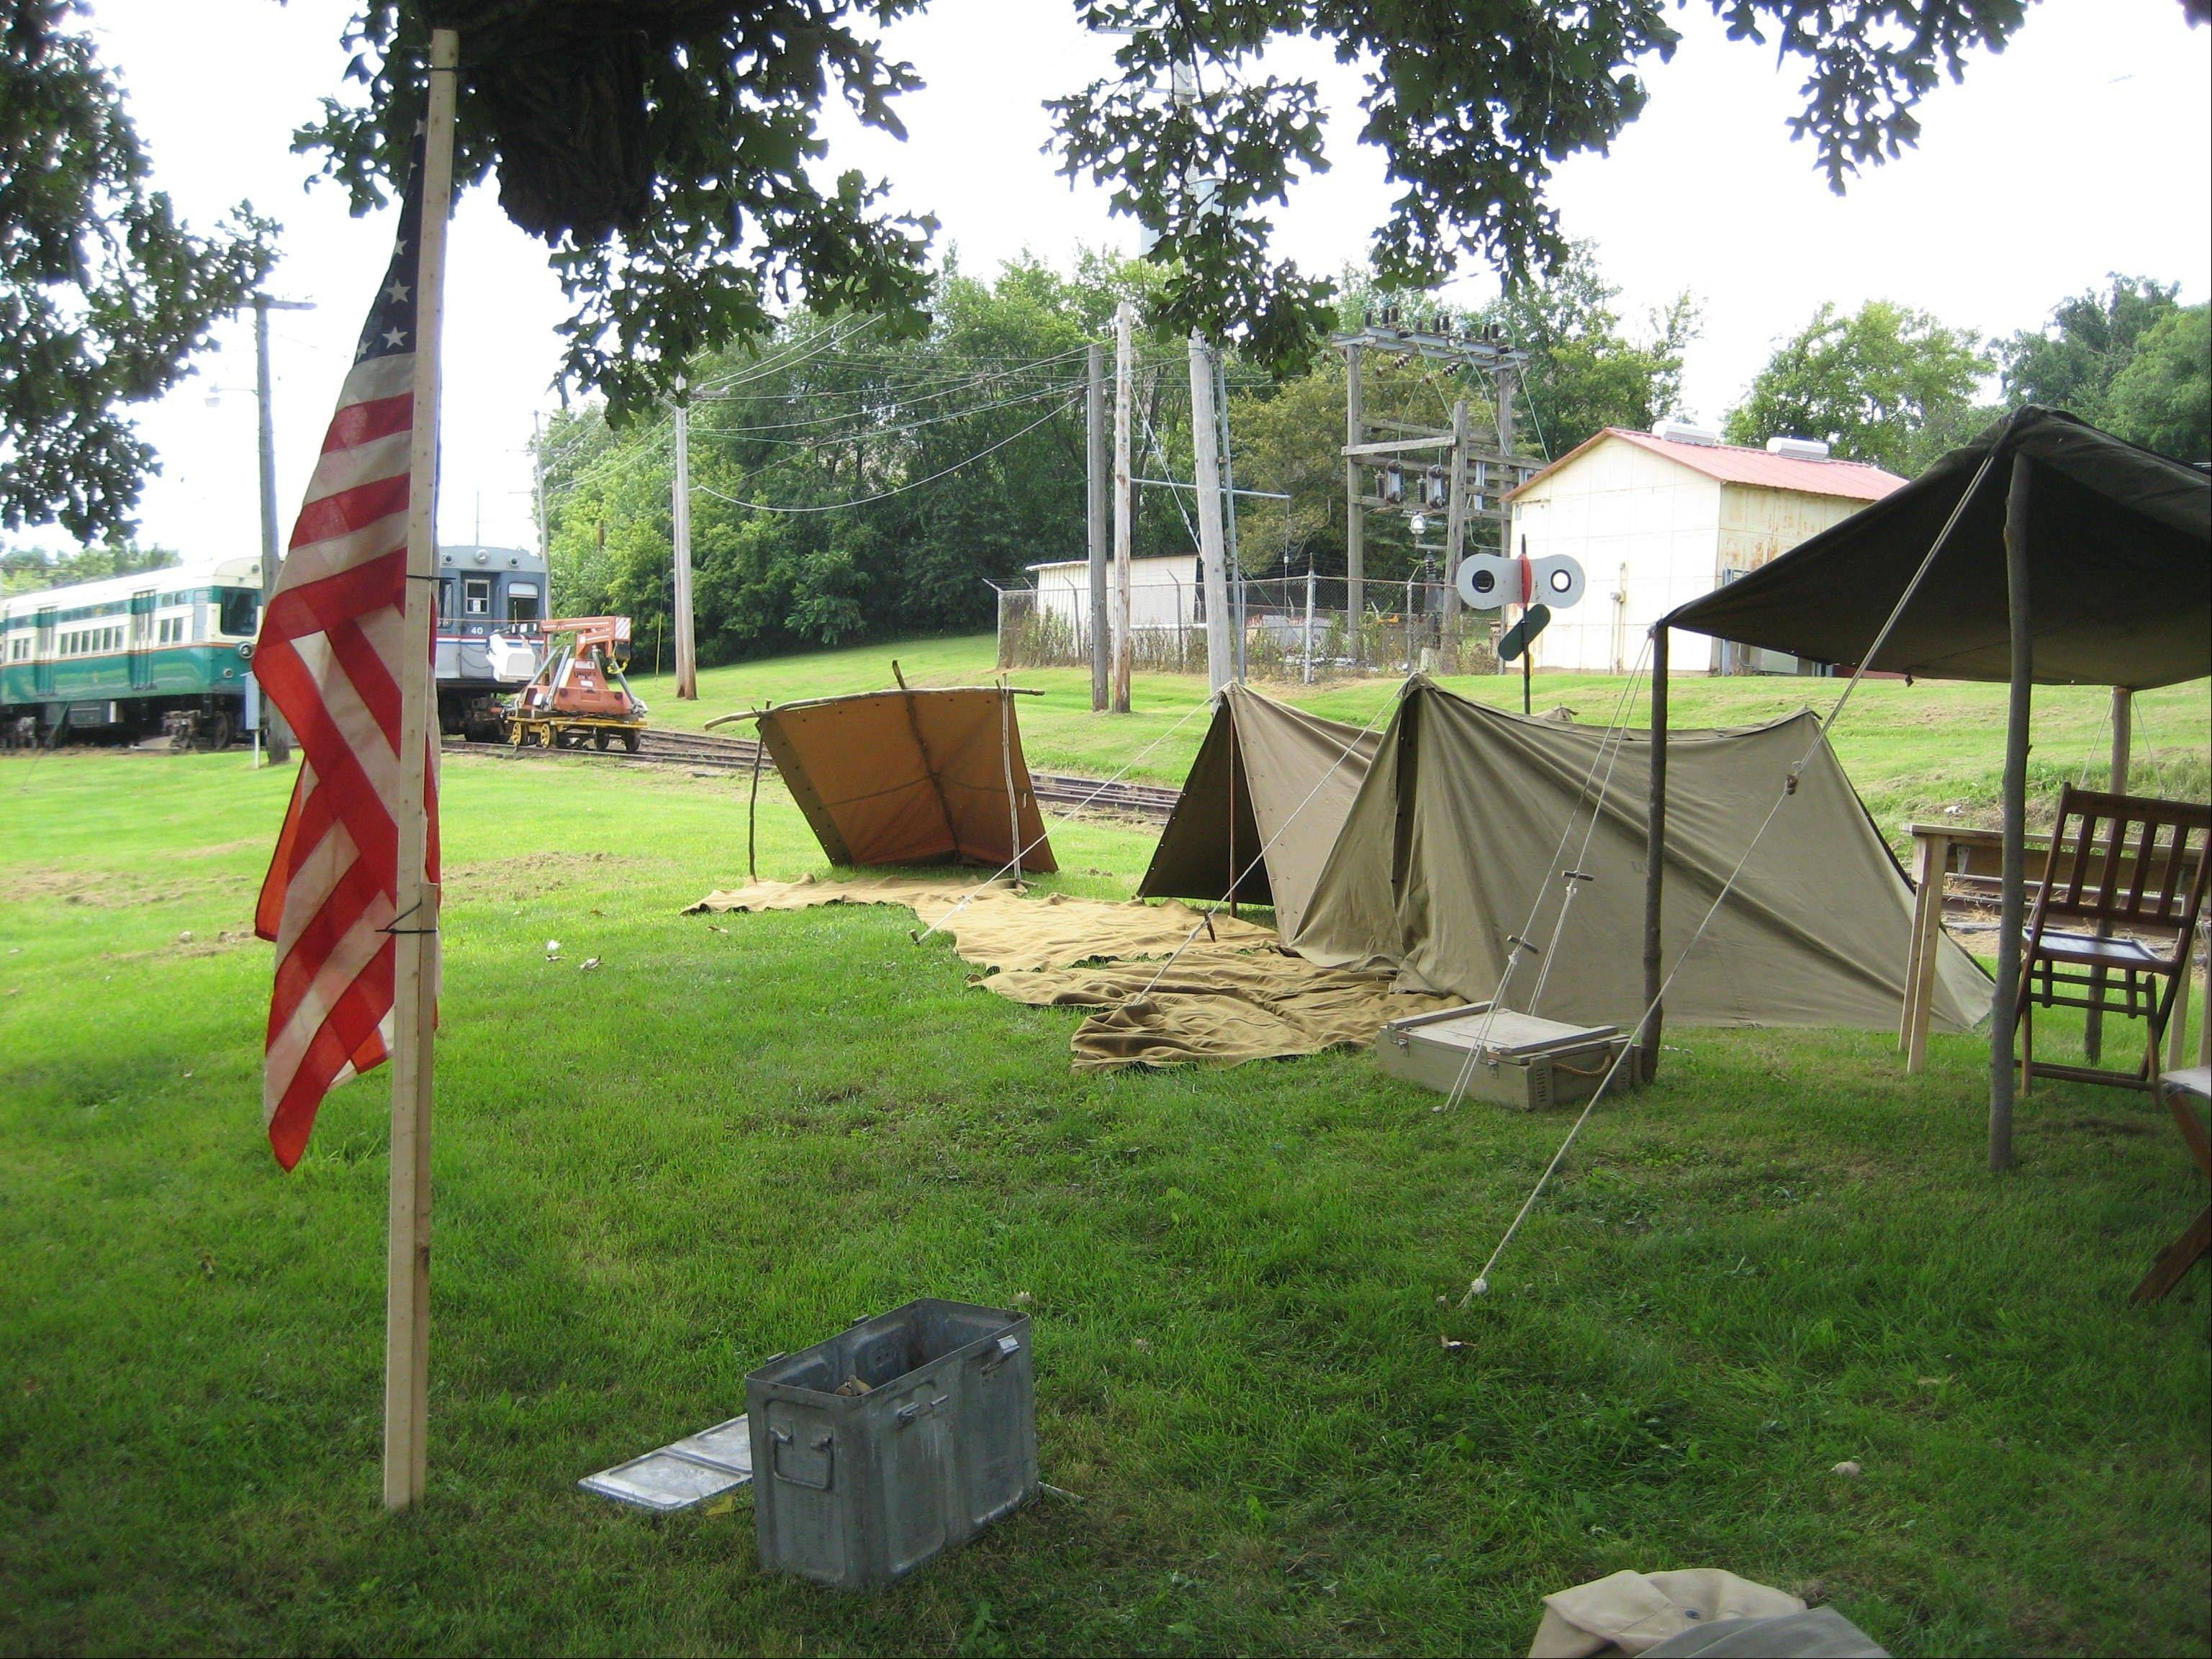 An American military encampment sits ready for trolley museum patrons as part of last summer's living history event. This year's event, Rails to Victory, is set for Saturday and Sunday, June 9-10.